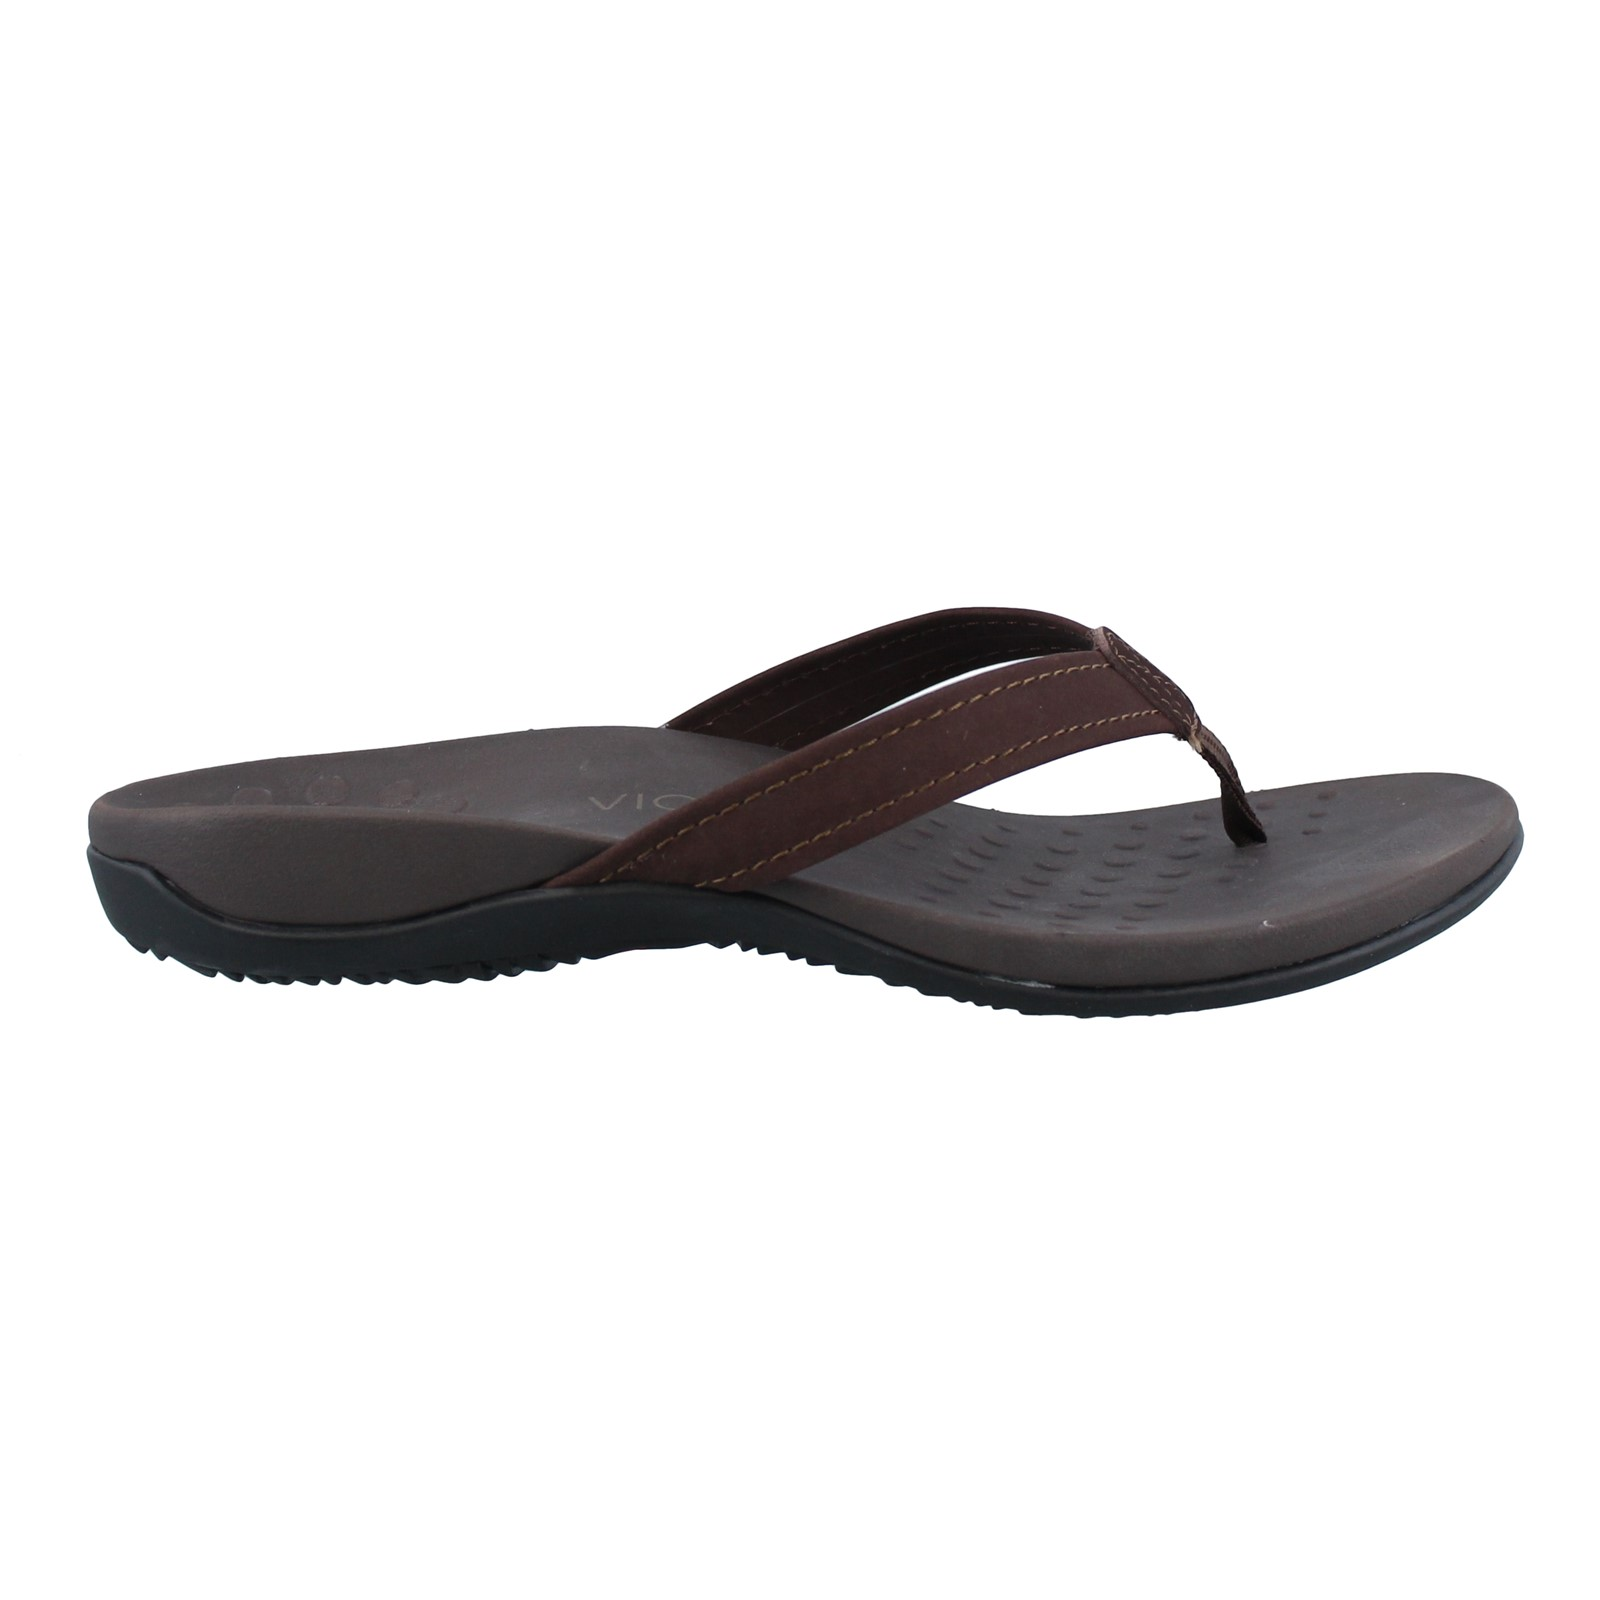 c3782457f Women's Vionic, Rest Thistle Thong Sandals | Peltz Shoes